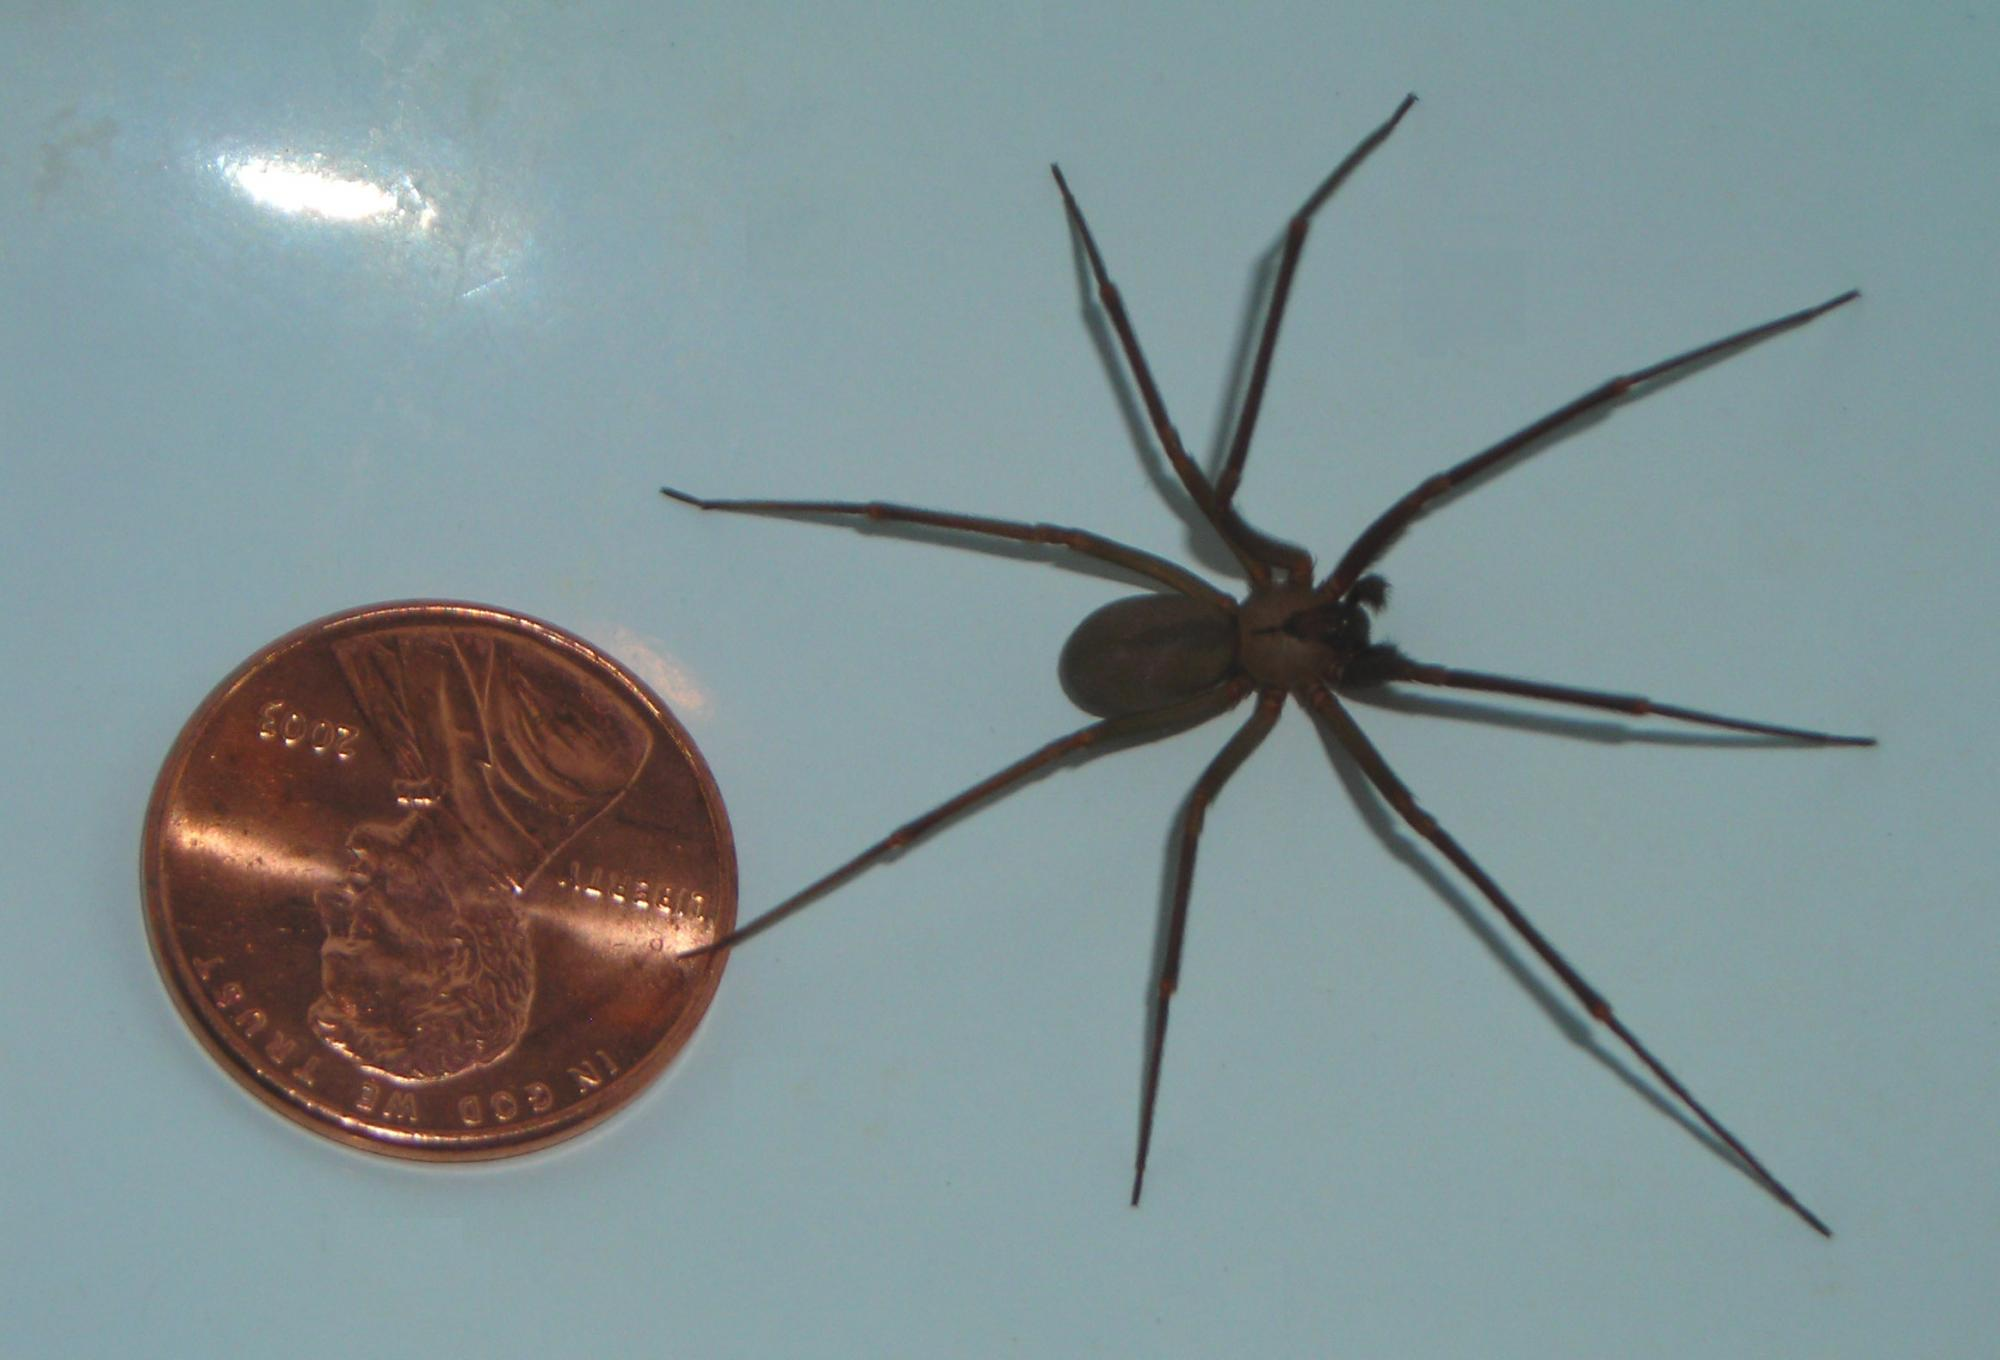 Though extremely rare, the bite of the long-legged brown recluse spider can be one of the most toxic to humans of all spider bites, causing blackened lesions or a dangerous systemic reaction.